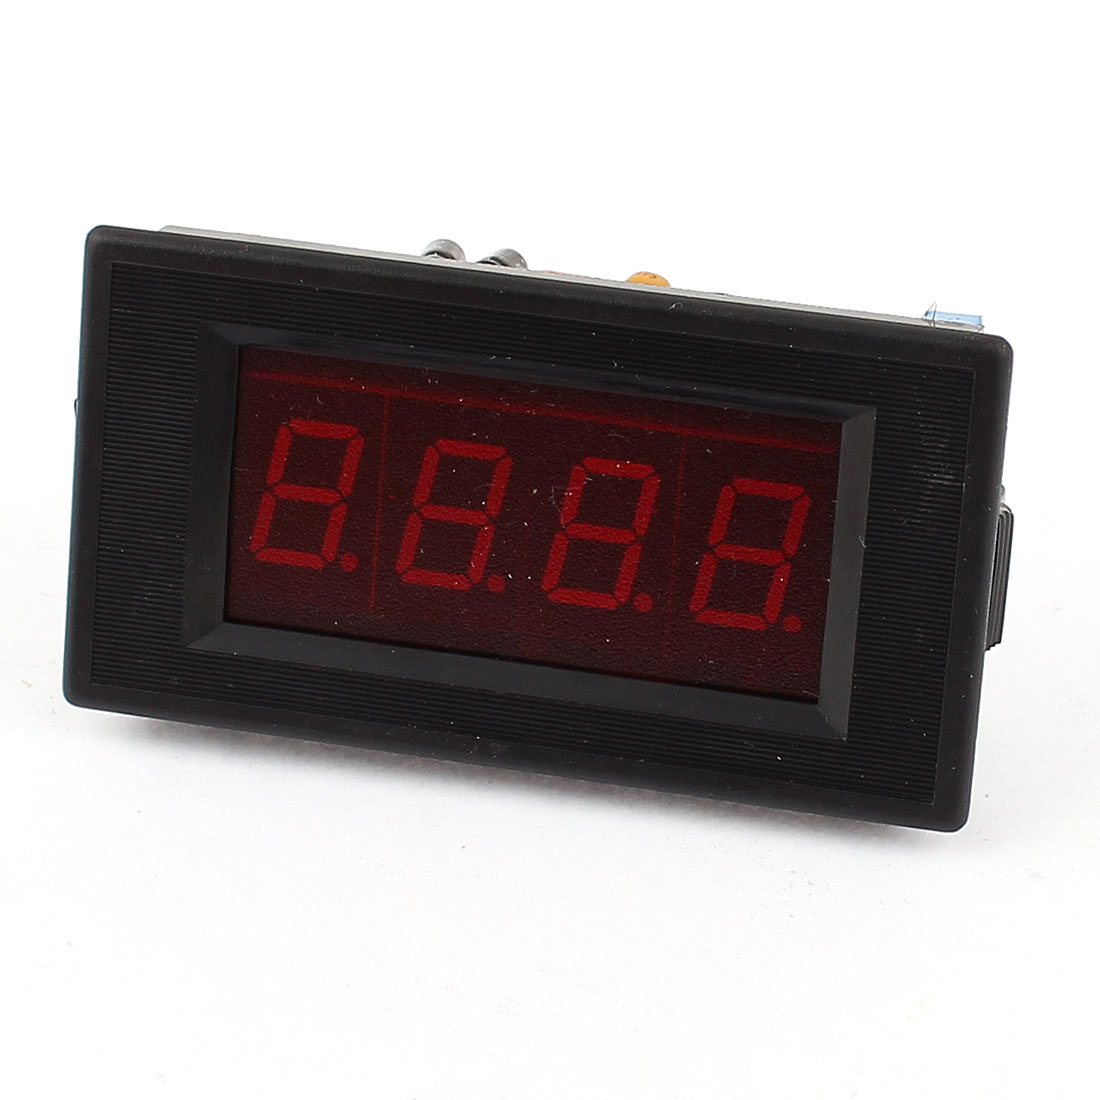 DC 50V 3 1/2 Digits Red LED Waterproof Voltmeter Wire Leads